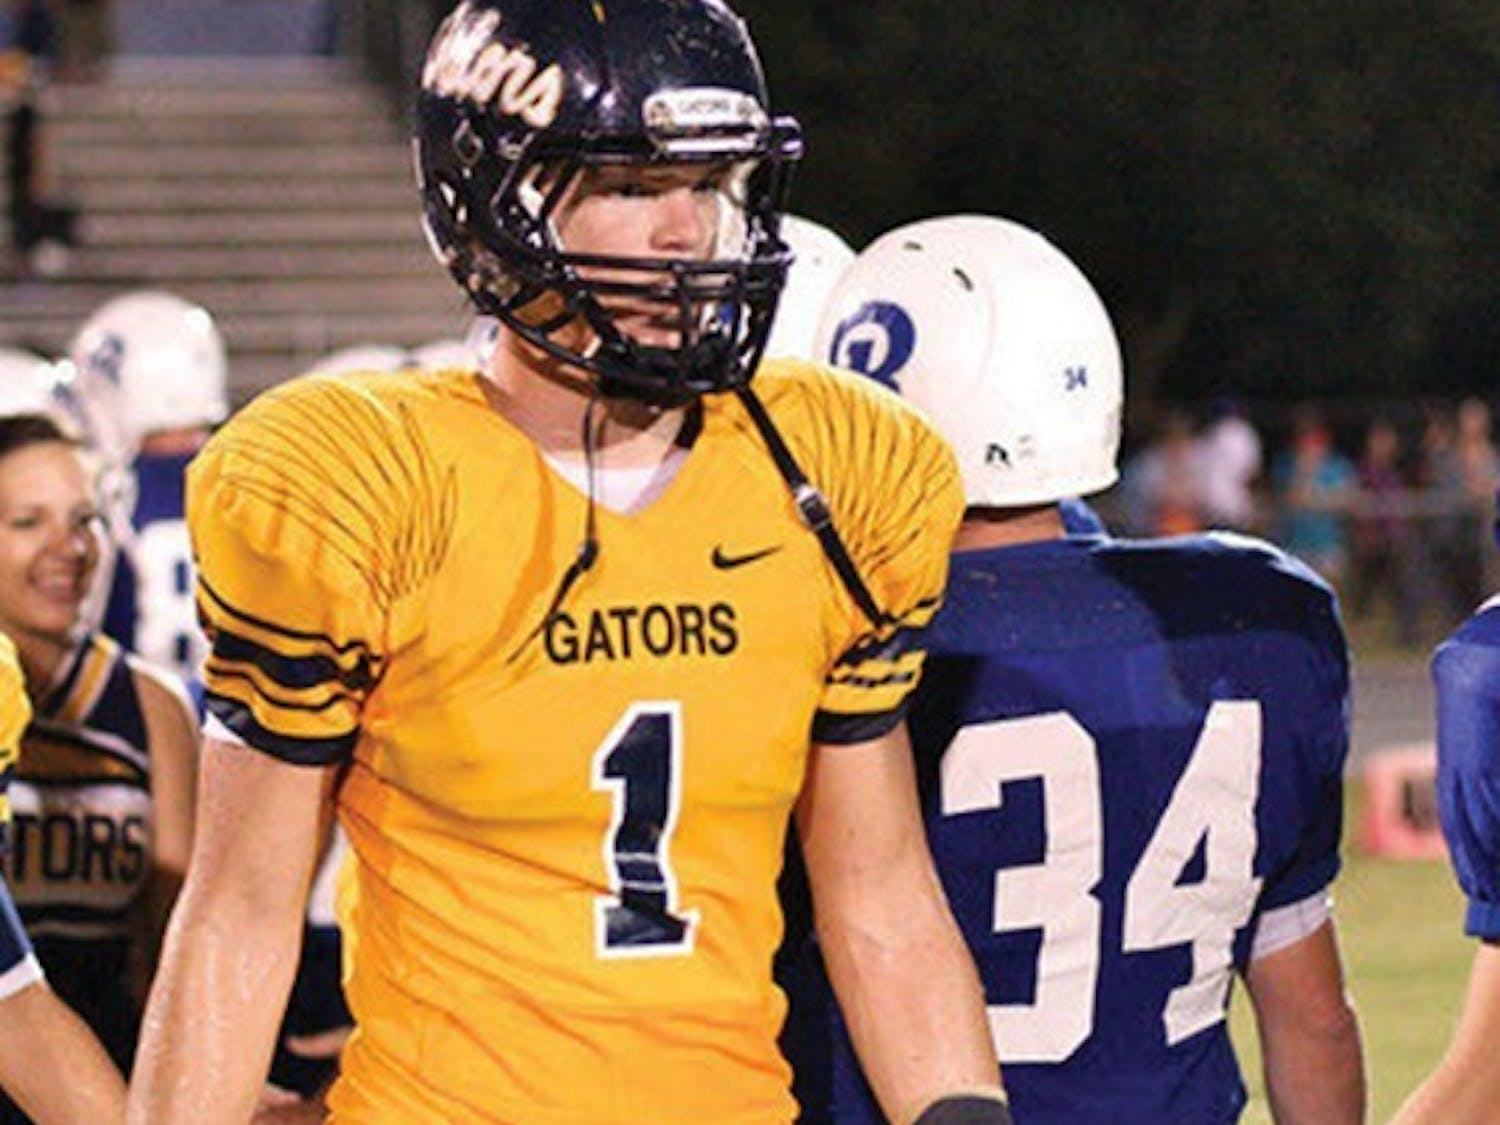 """Kent Taylor, the 2012 No. 1 rated tight end in the country by Rivals.com, hasn't yet narrowed his list of 30 offers to a top five. But the Land O' Lakes High standout said he is """"really high on Florida."""""""